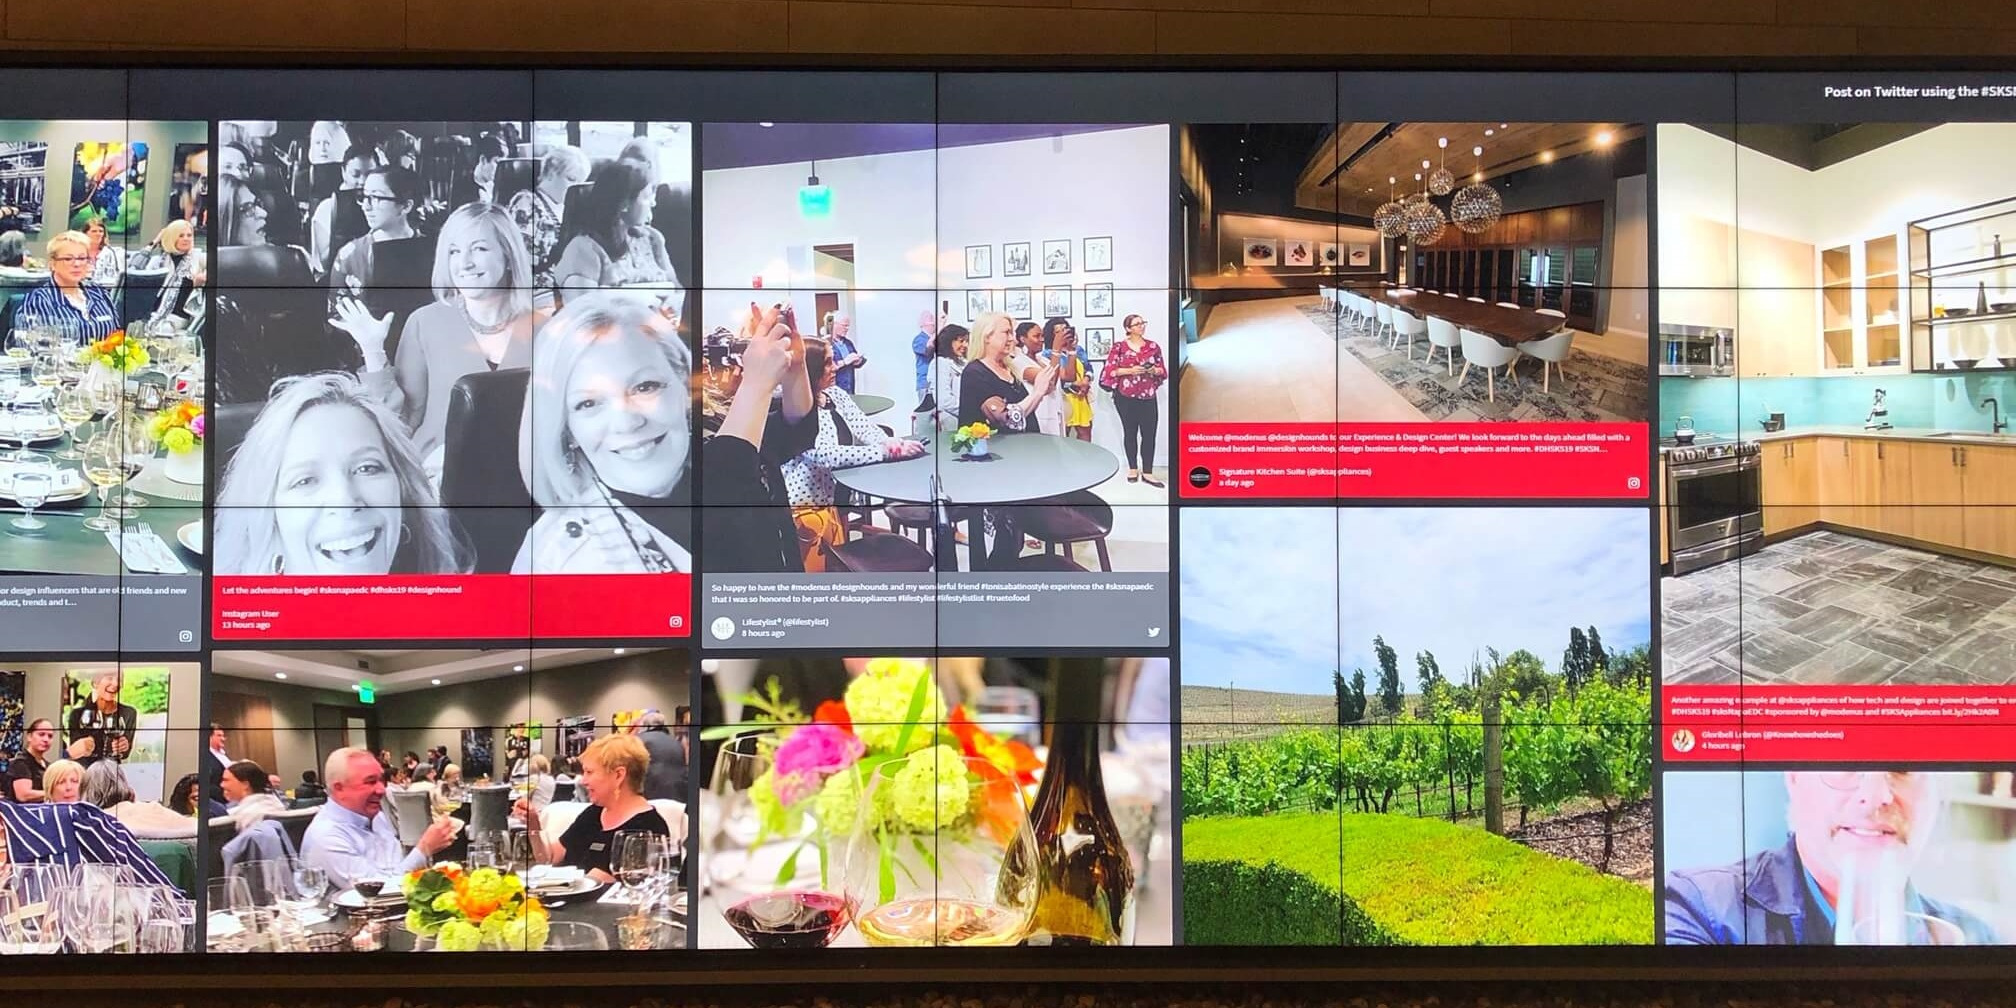 In the lobby of Signature Kitchen Suites Appliances' Experience and Design Center, all the posts from our Instagram accounts were shared here on the wall of tv screens, rotating through like a highlight reel, as we participated in all the events throughout the session. So impressive!